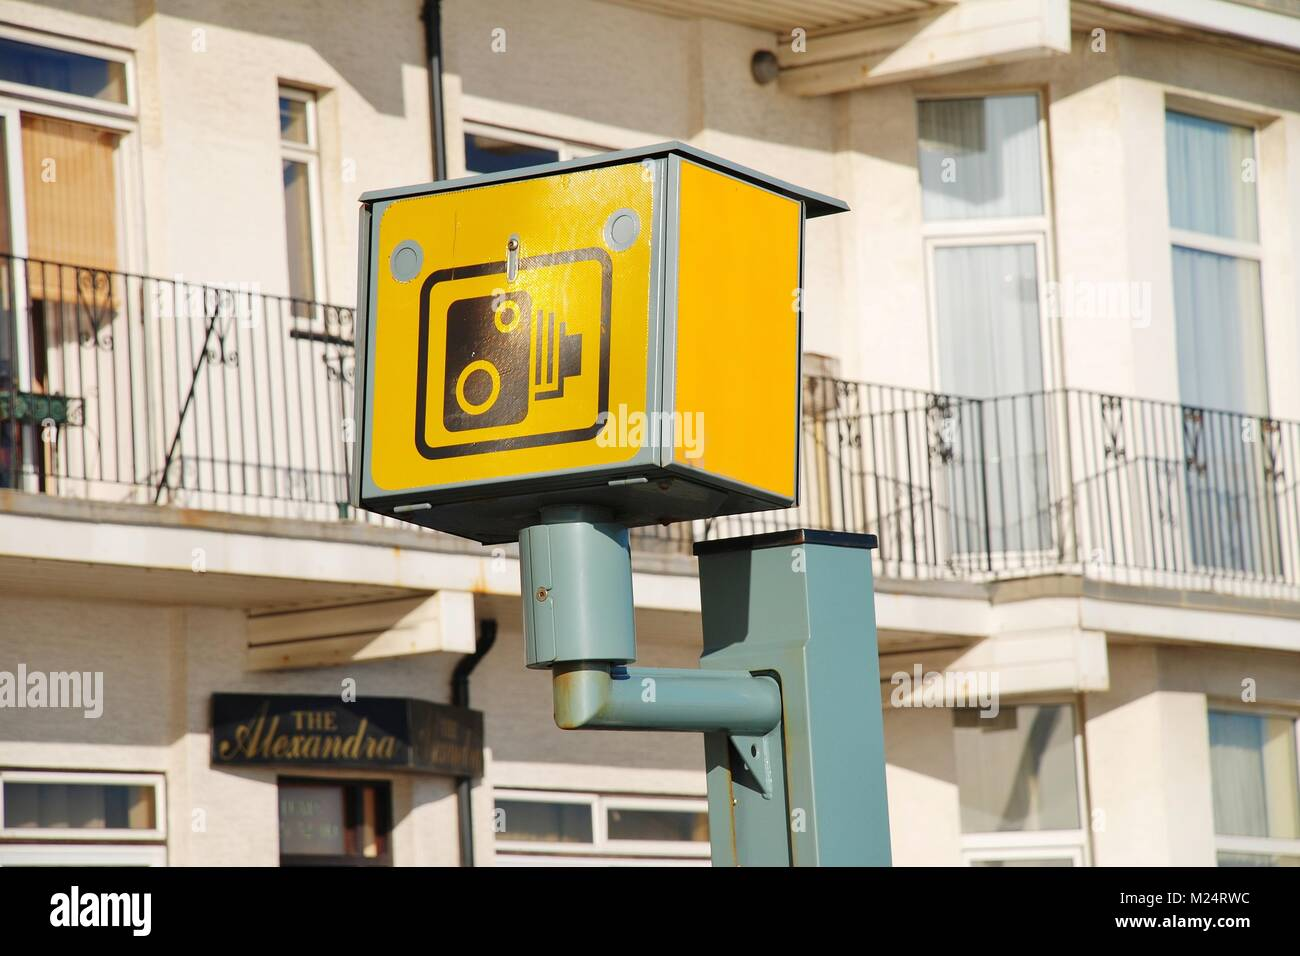 An iconic yellow  speed camera on the seafront road at Hastings in East Sussex, England on November 3, 2009. - Stock Image